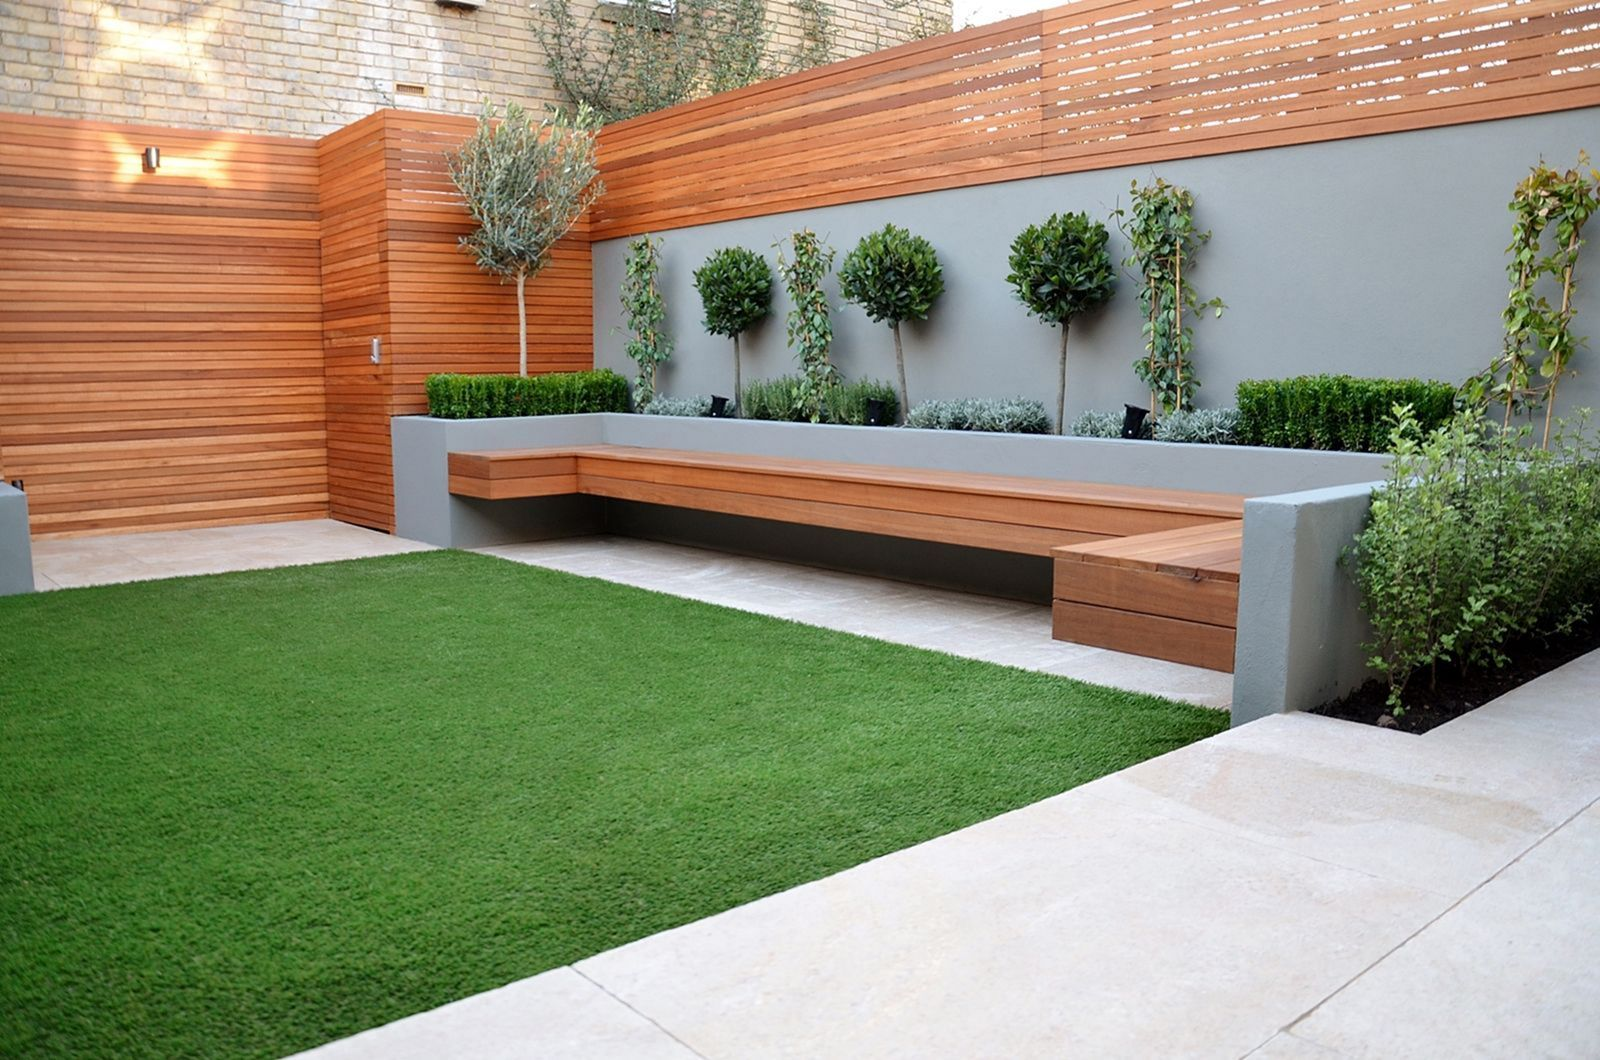 20 Amazing and Cost-effective Modern Landscape Garden ... on Cost To Landscape Small Backyard id=76251